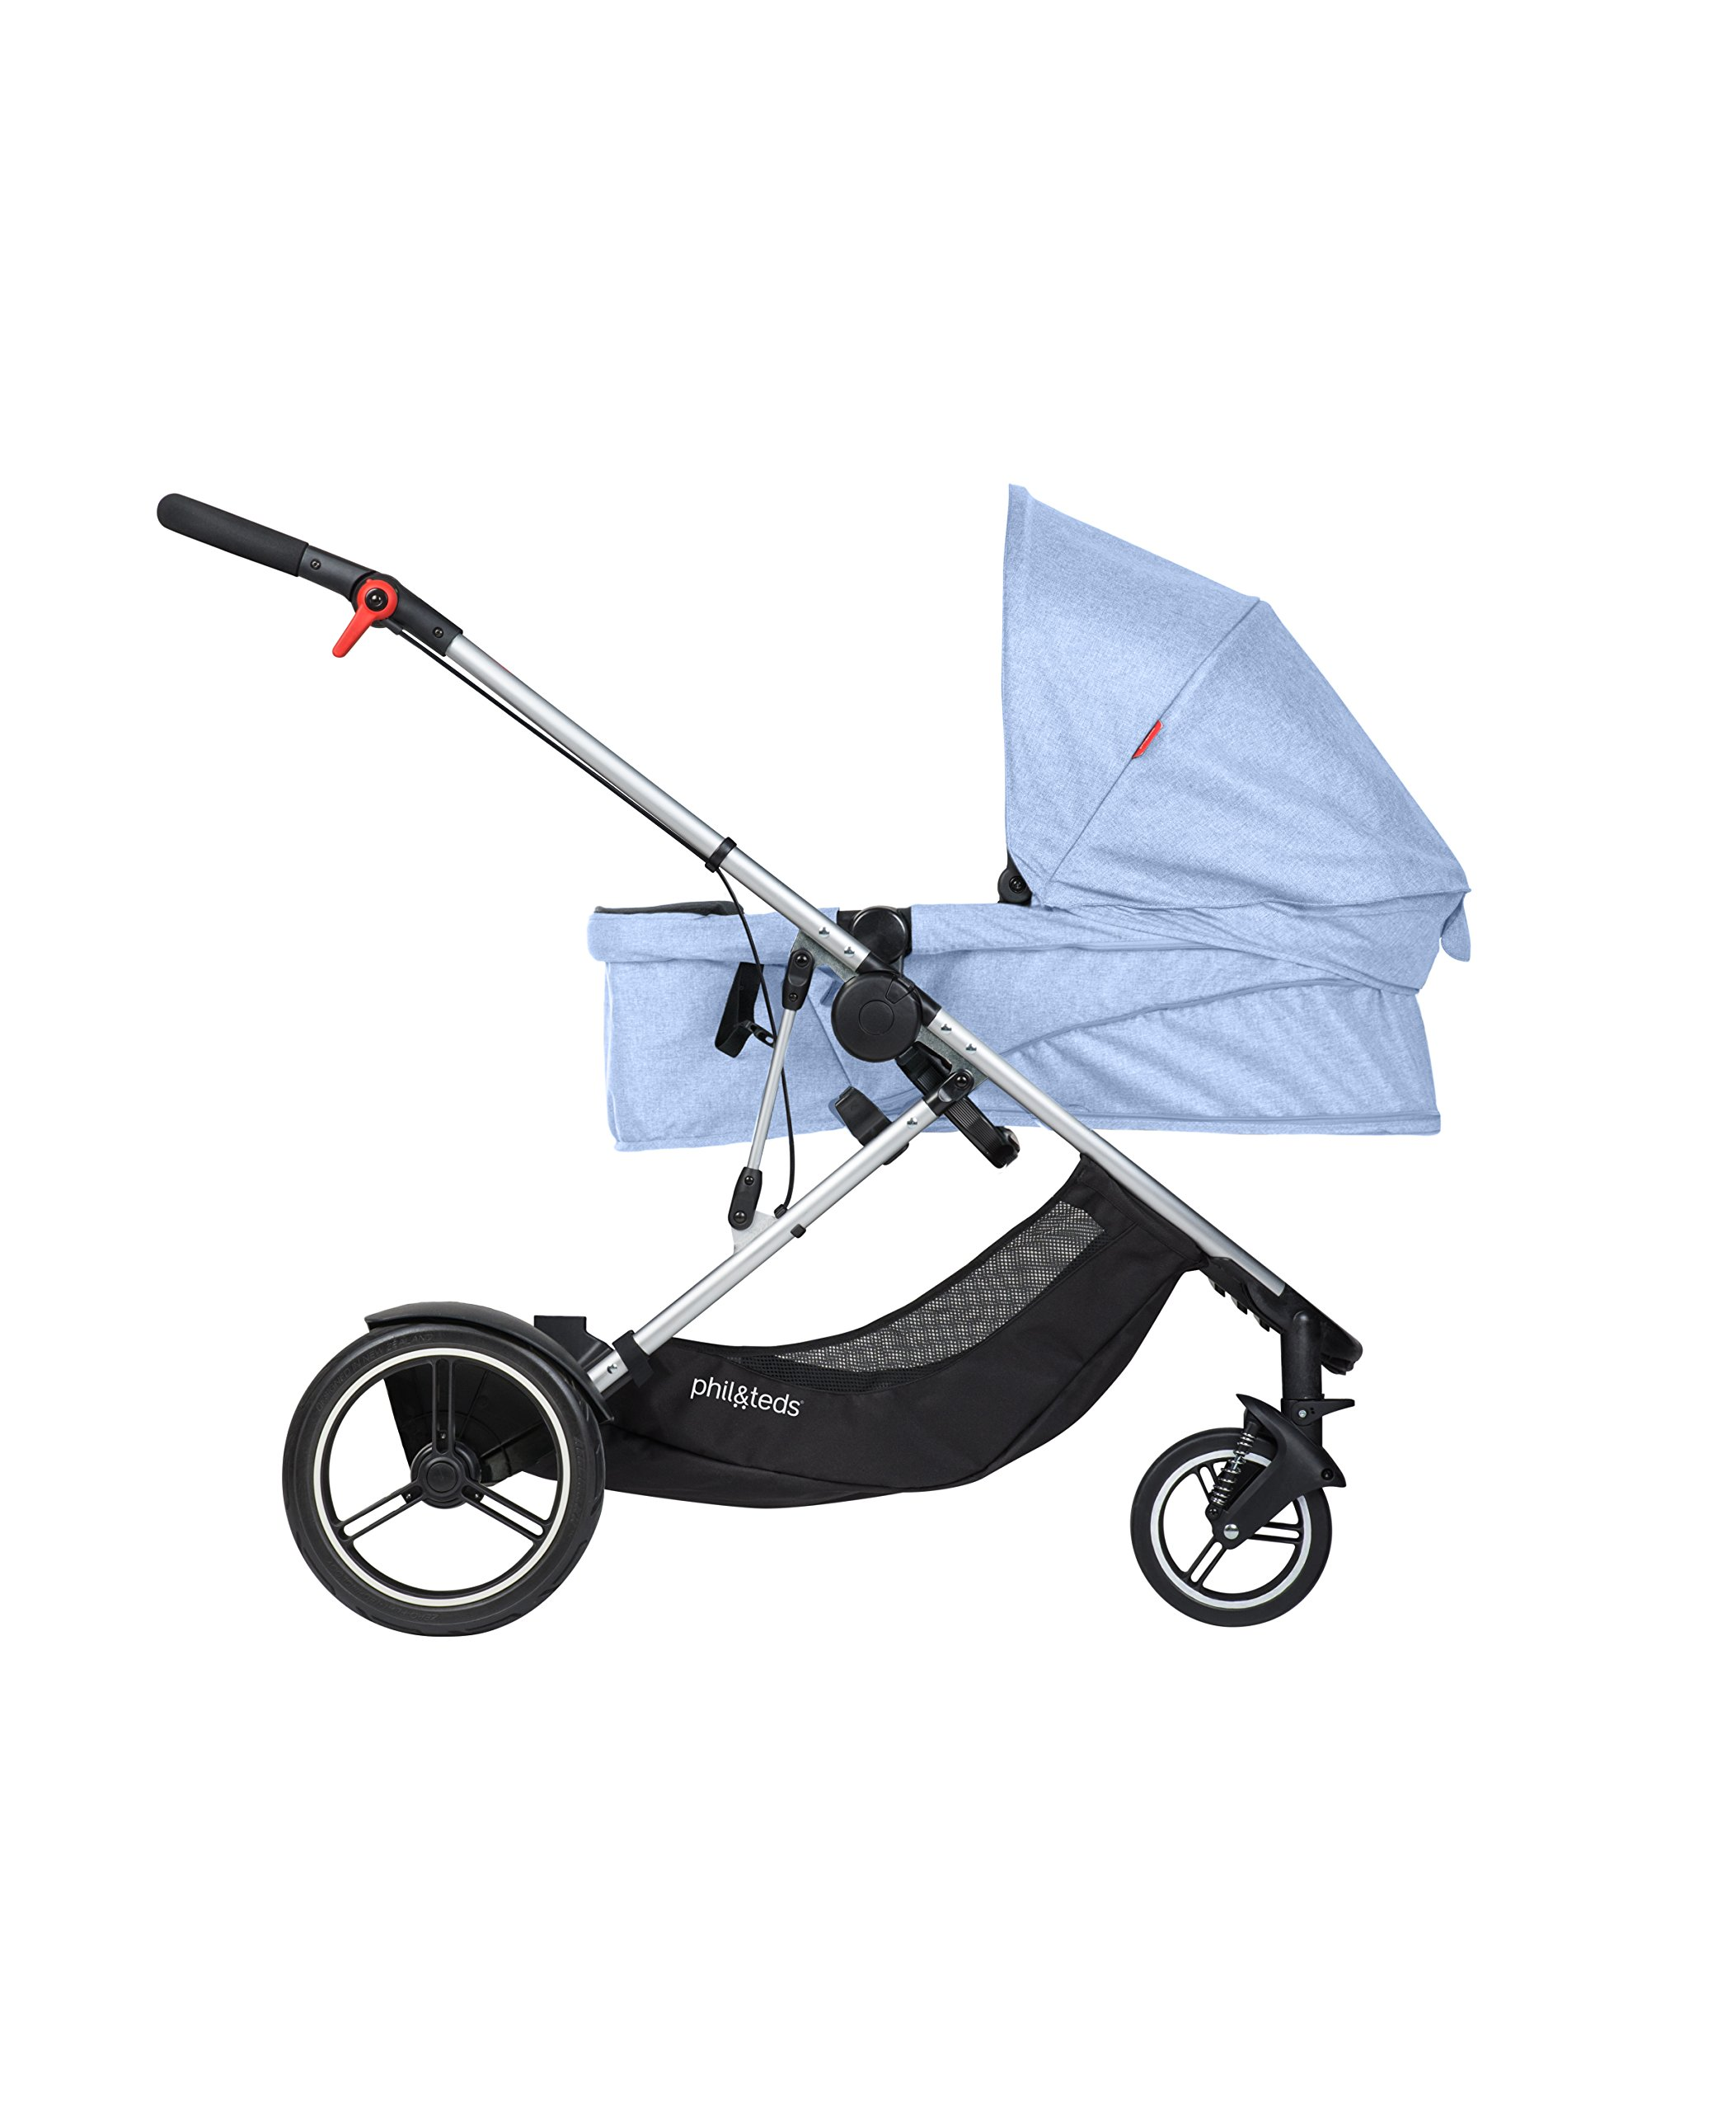 phil&teds Voyager Buggy Pushchair, Blue phil&teds 4-in-1 modular seat with four modes: parent facing, forward facing, lay flat bassinet (on buggy) and free standing bassinet (off buggy) Revolutionary stand fold with 2 seats on Double kit easily converts to lie flat mode as well 3